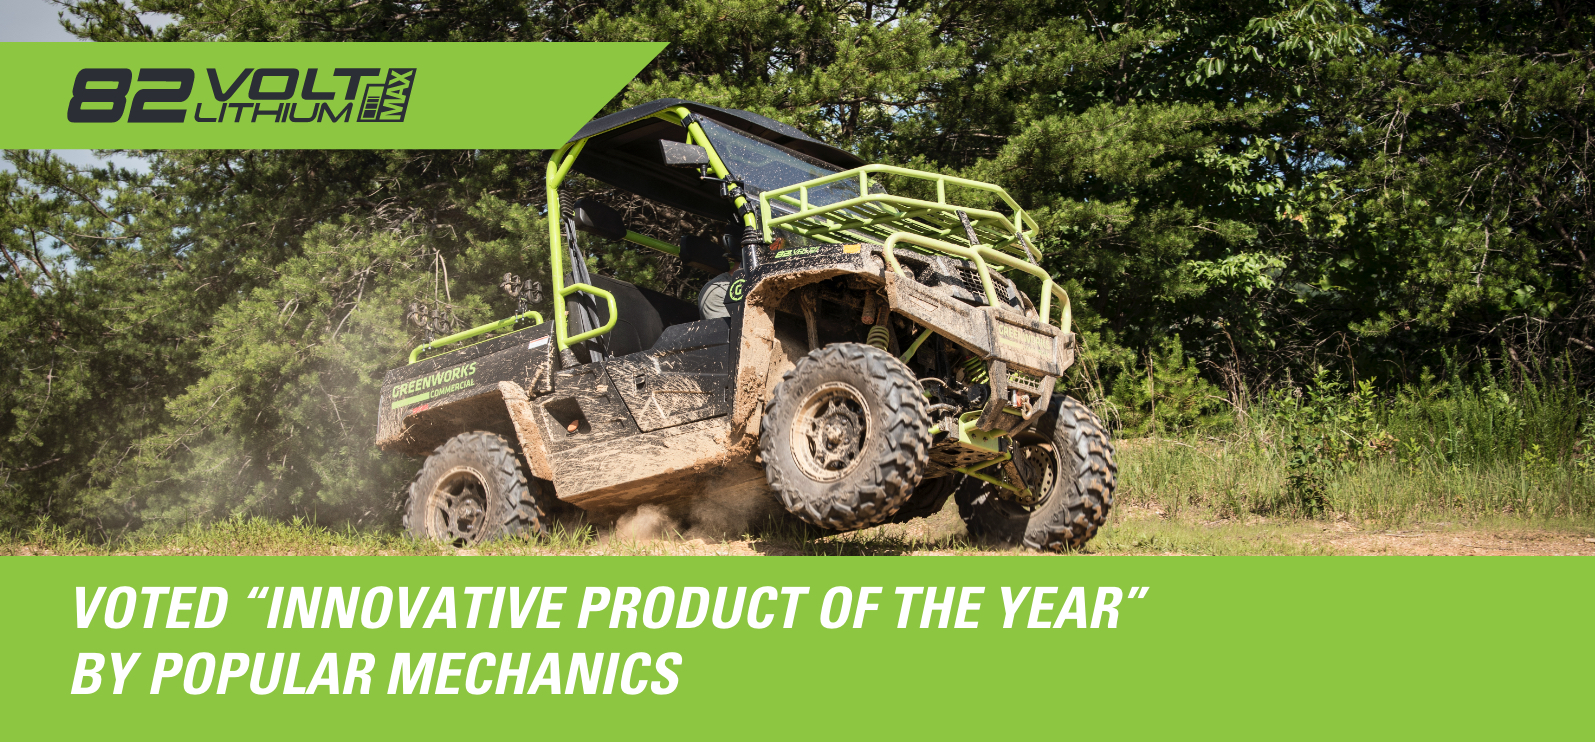 82V Utility Vehicle 800 | Greenworks Commercial